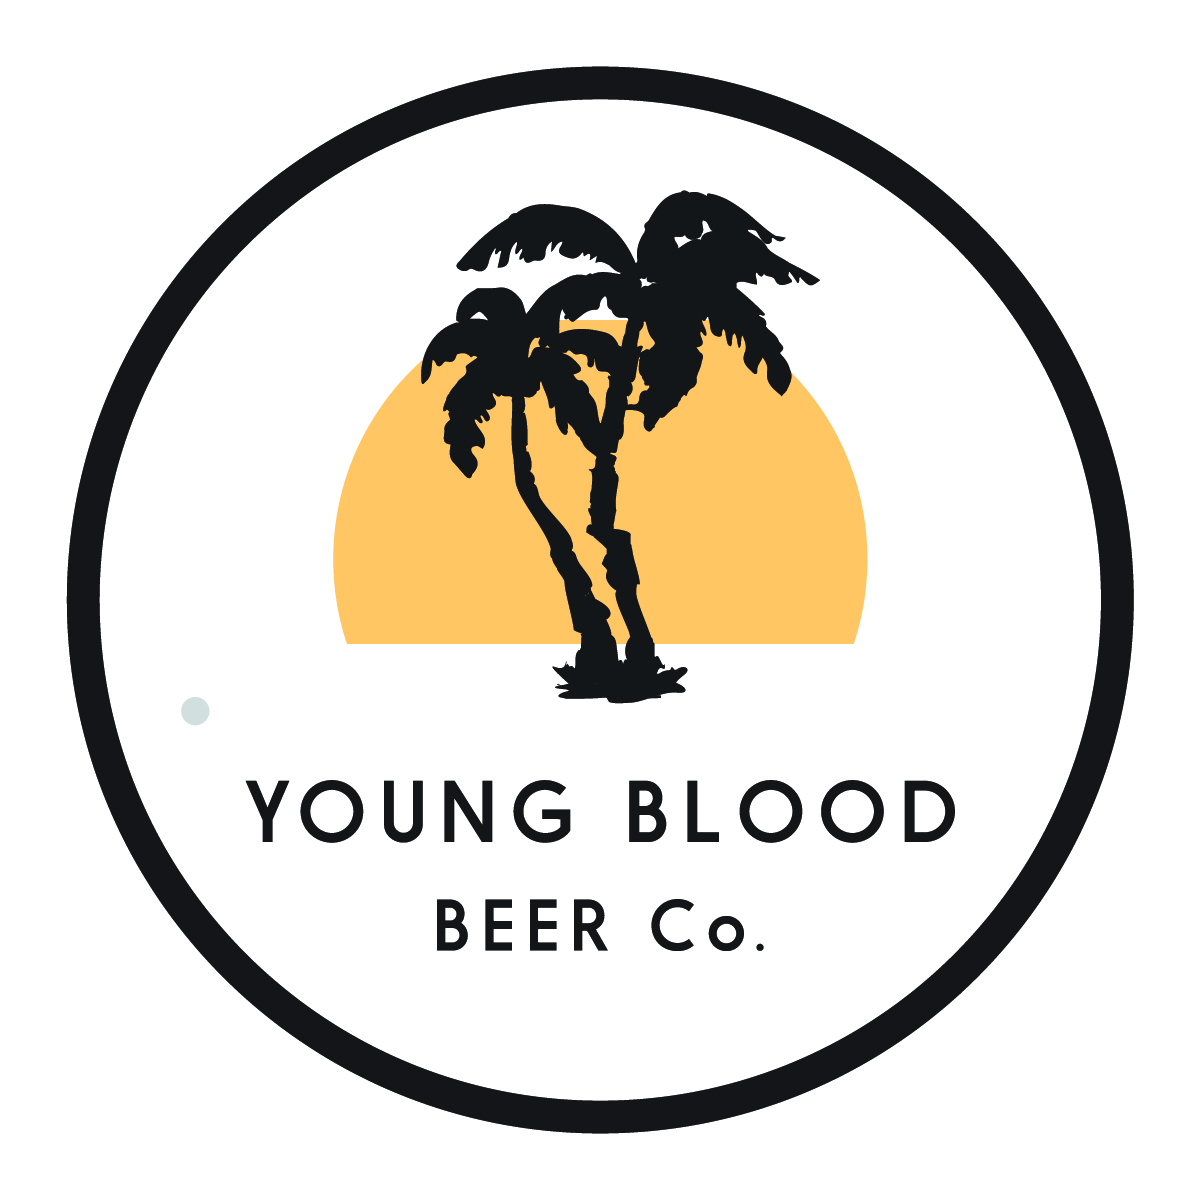 young blood beer co. logo